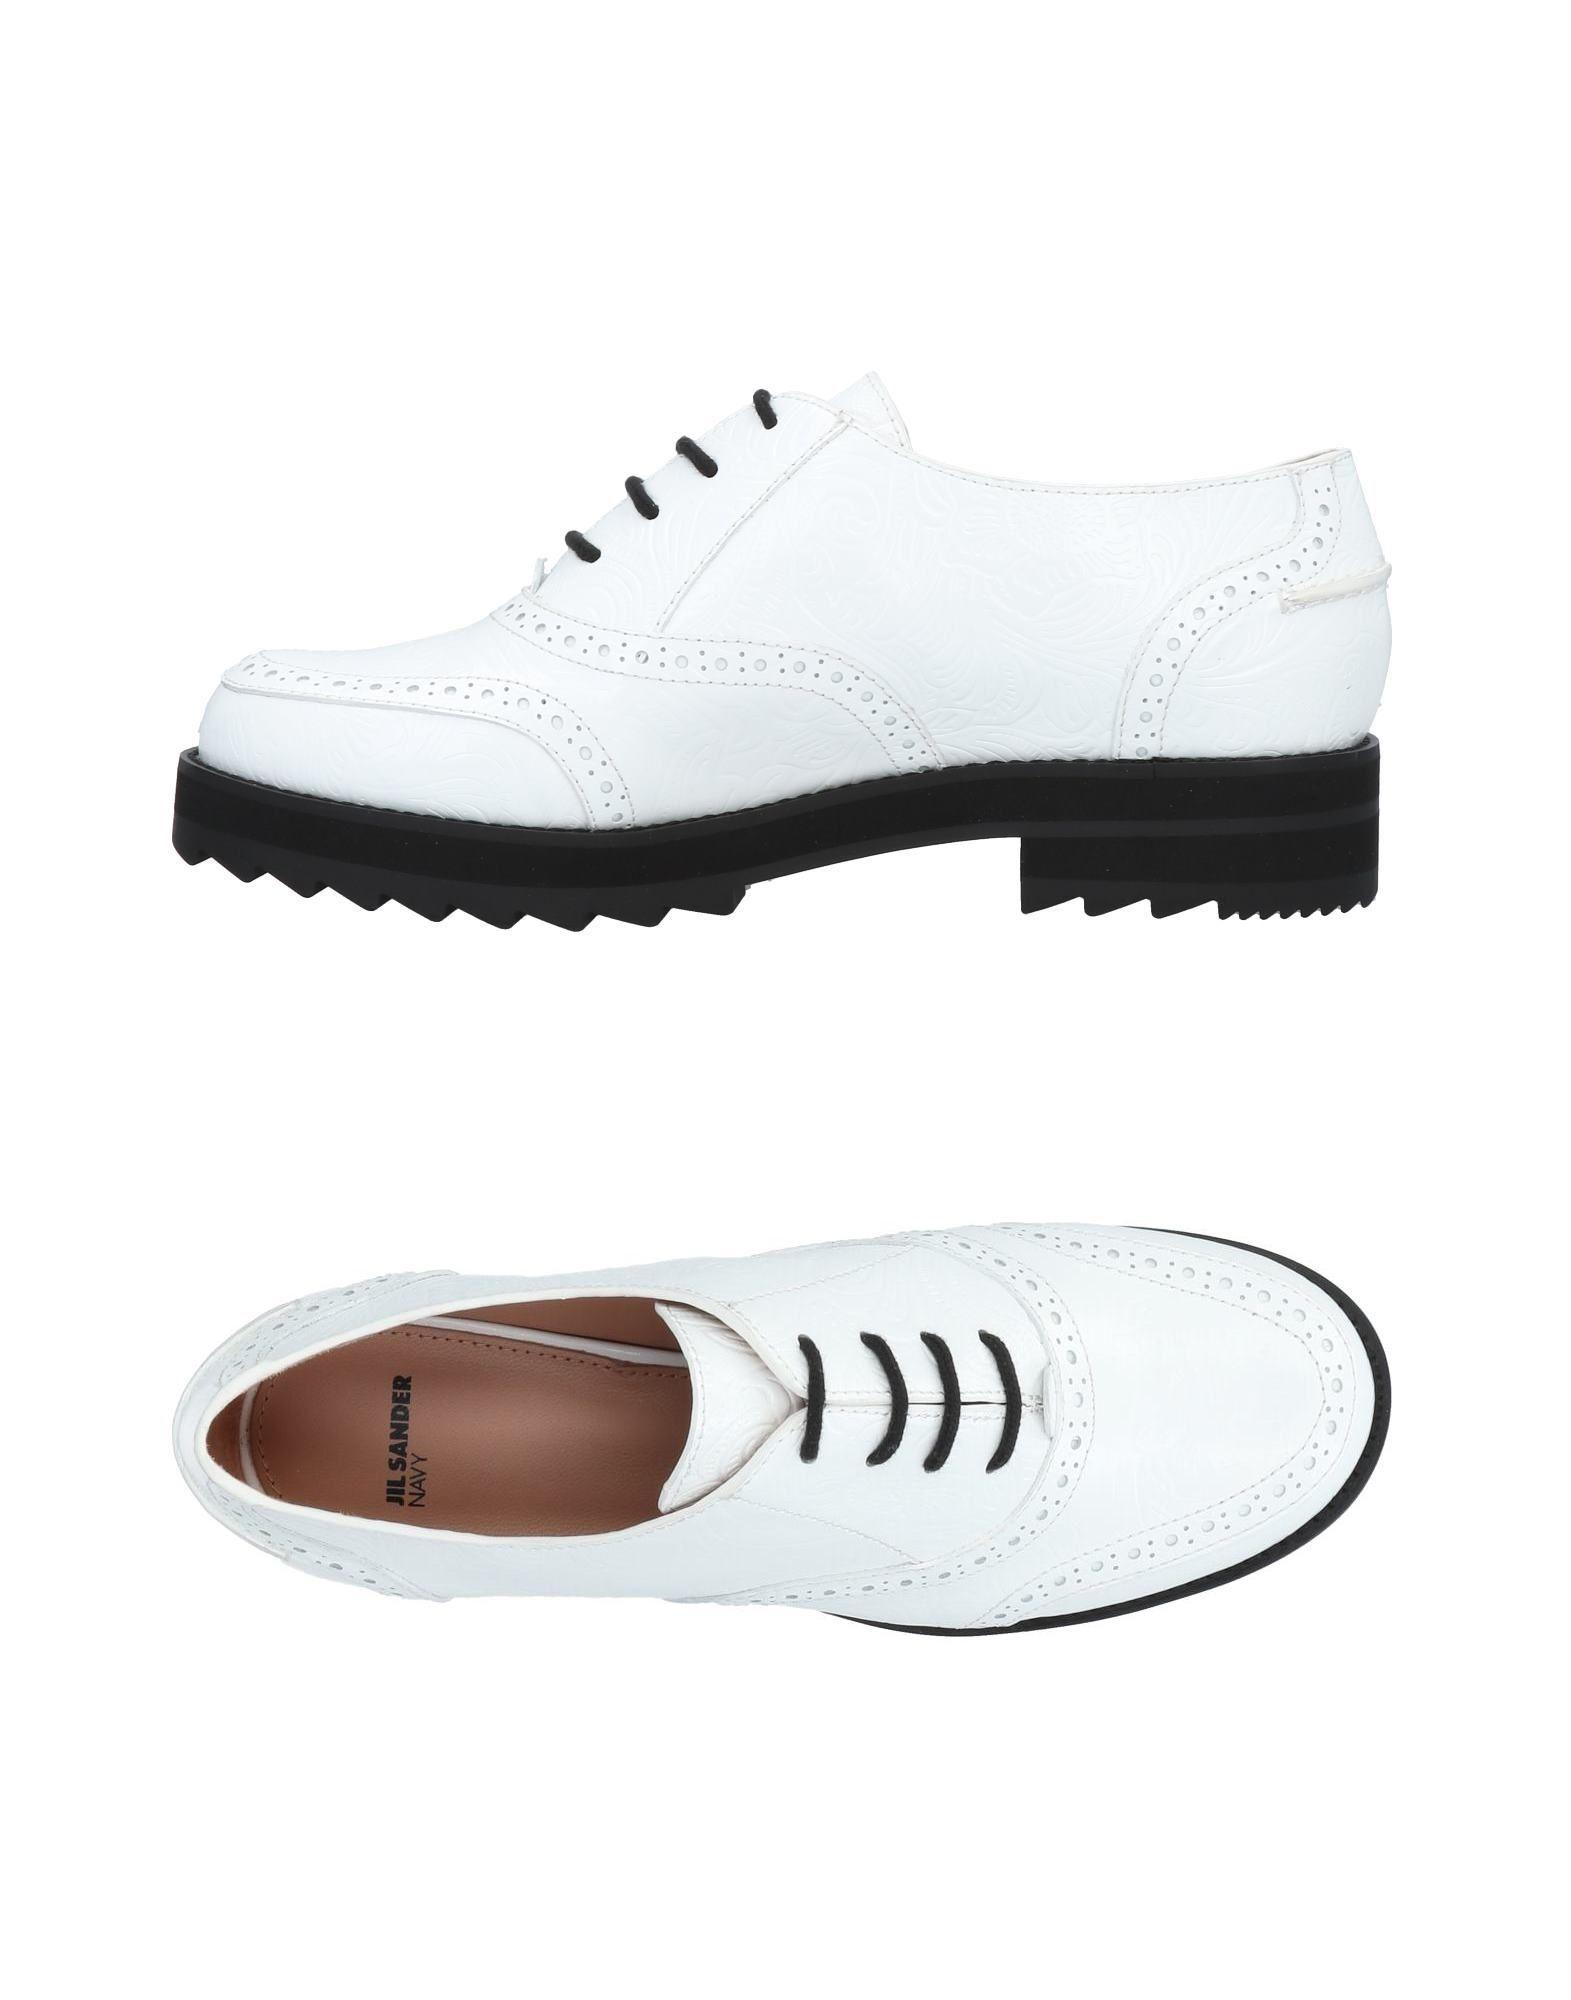 Jil Sander Laced Shoes In White